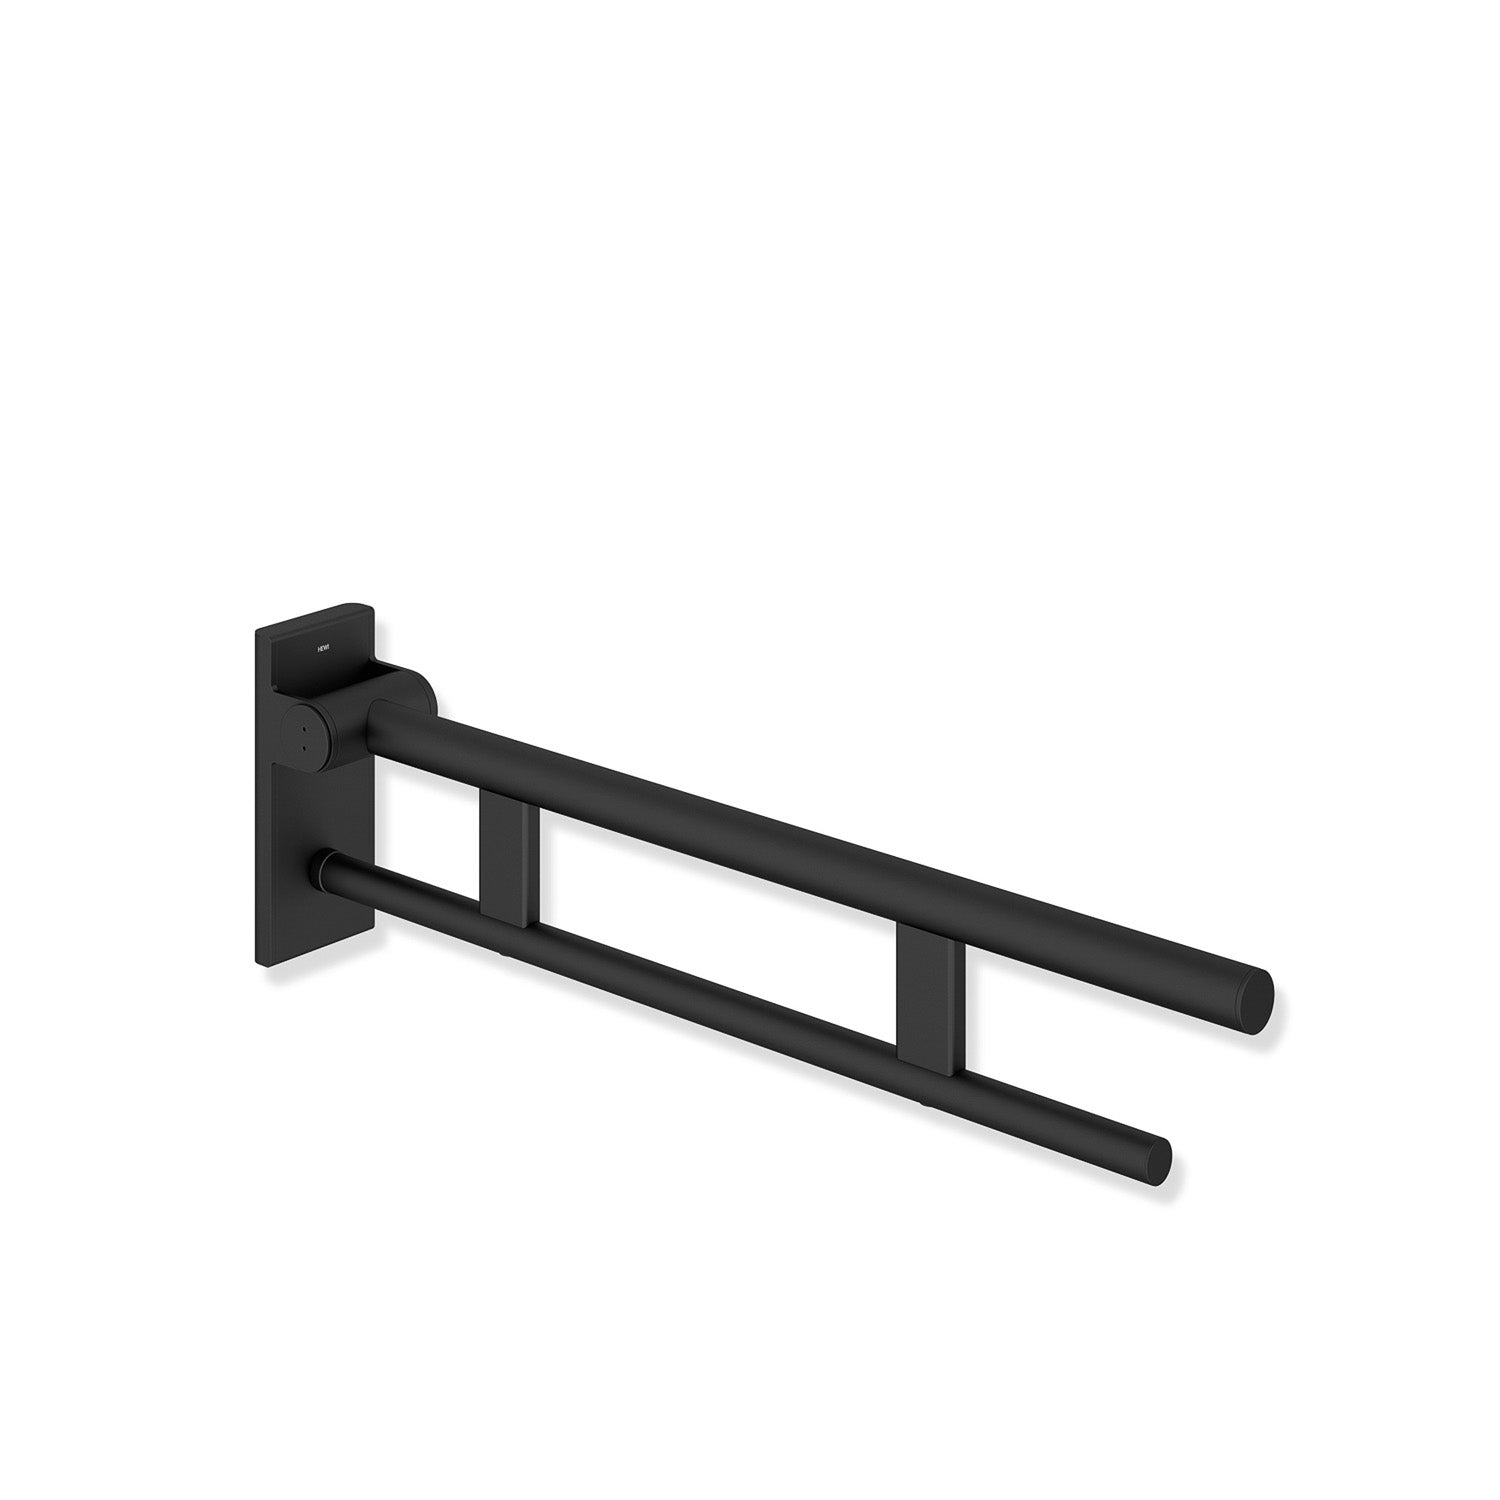 850mm Freestyle Removable Hinged Grab Rail with a matt black finish on a white background